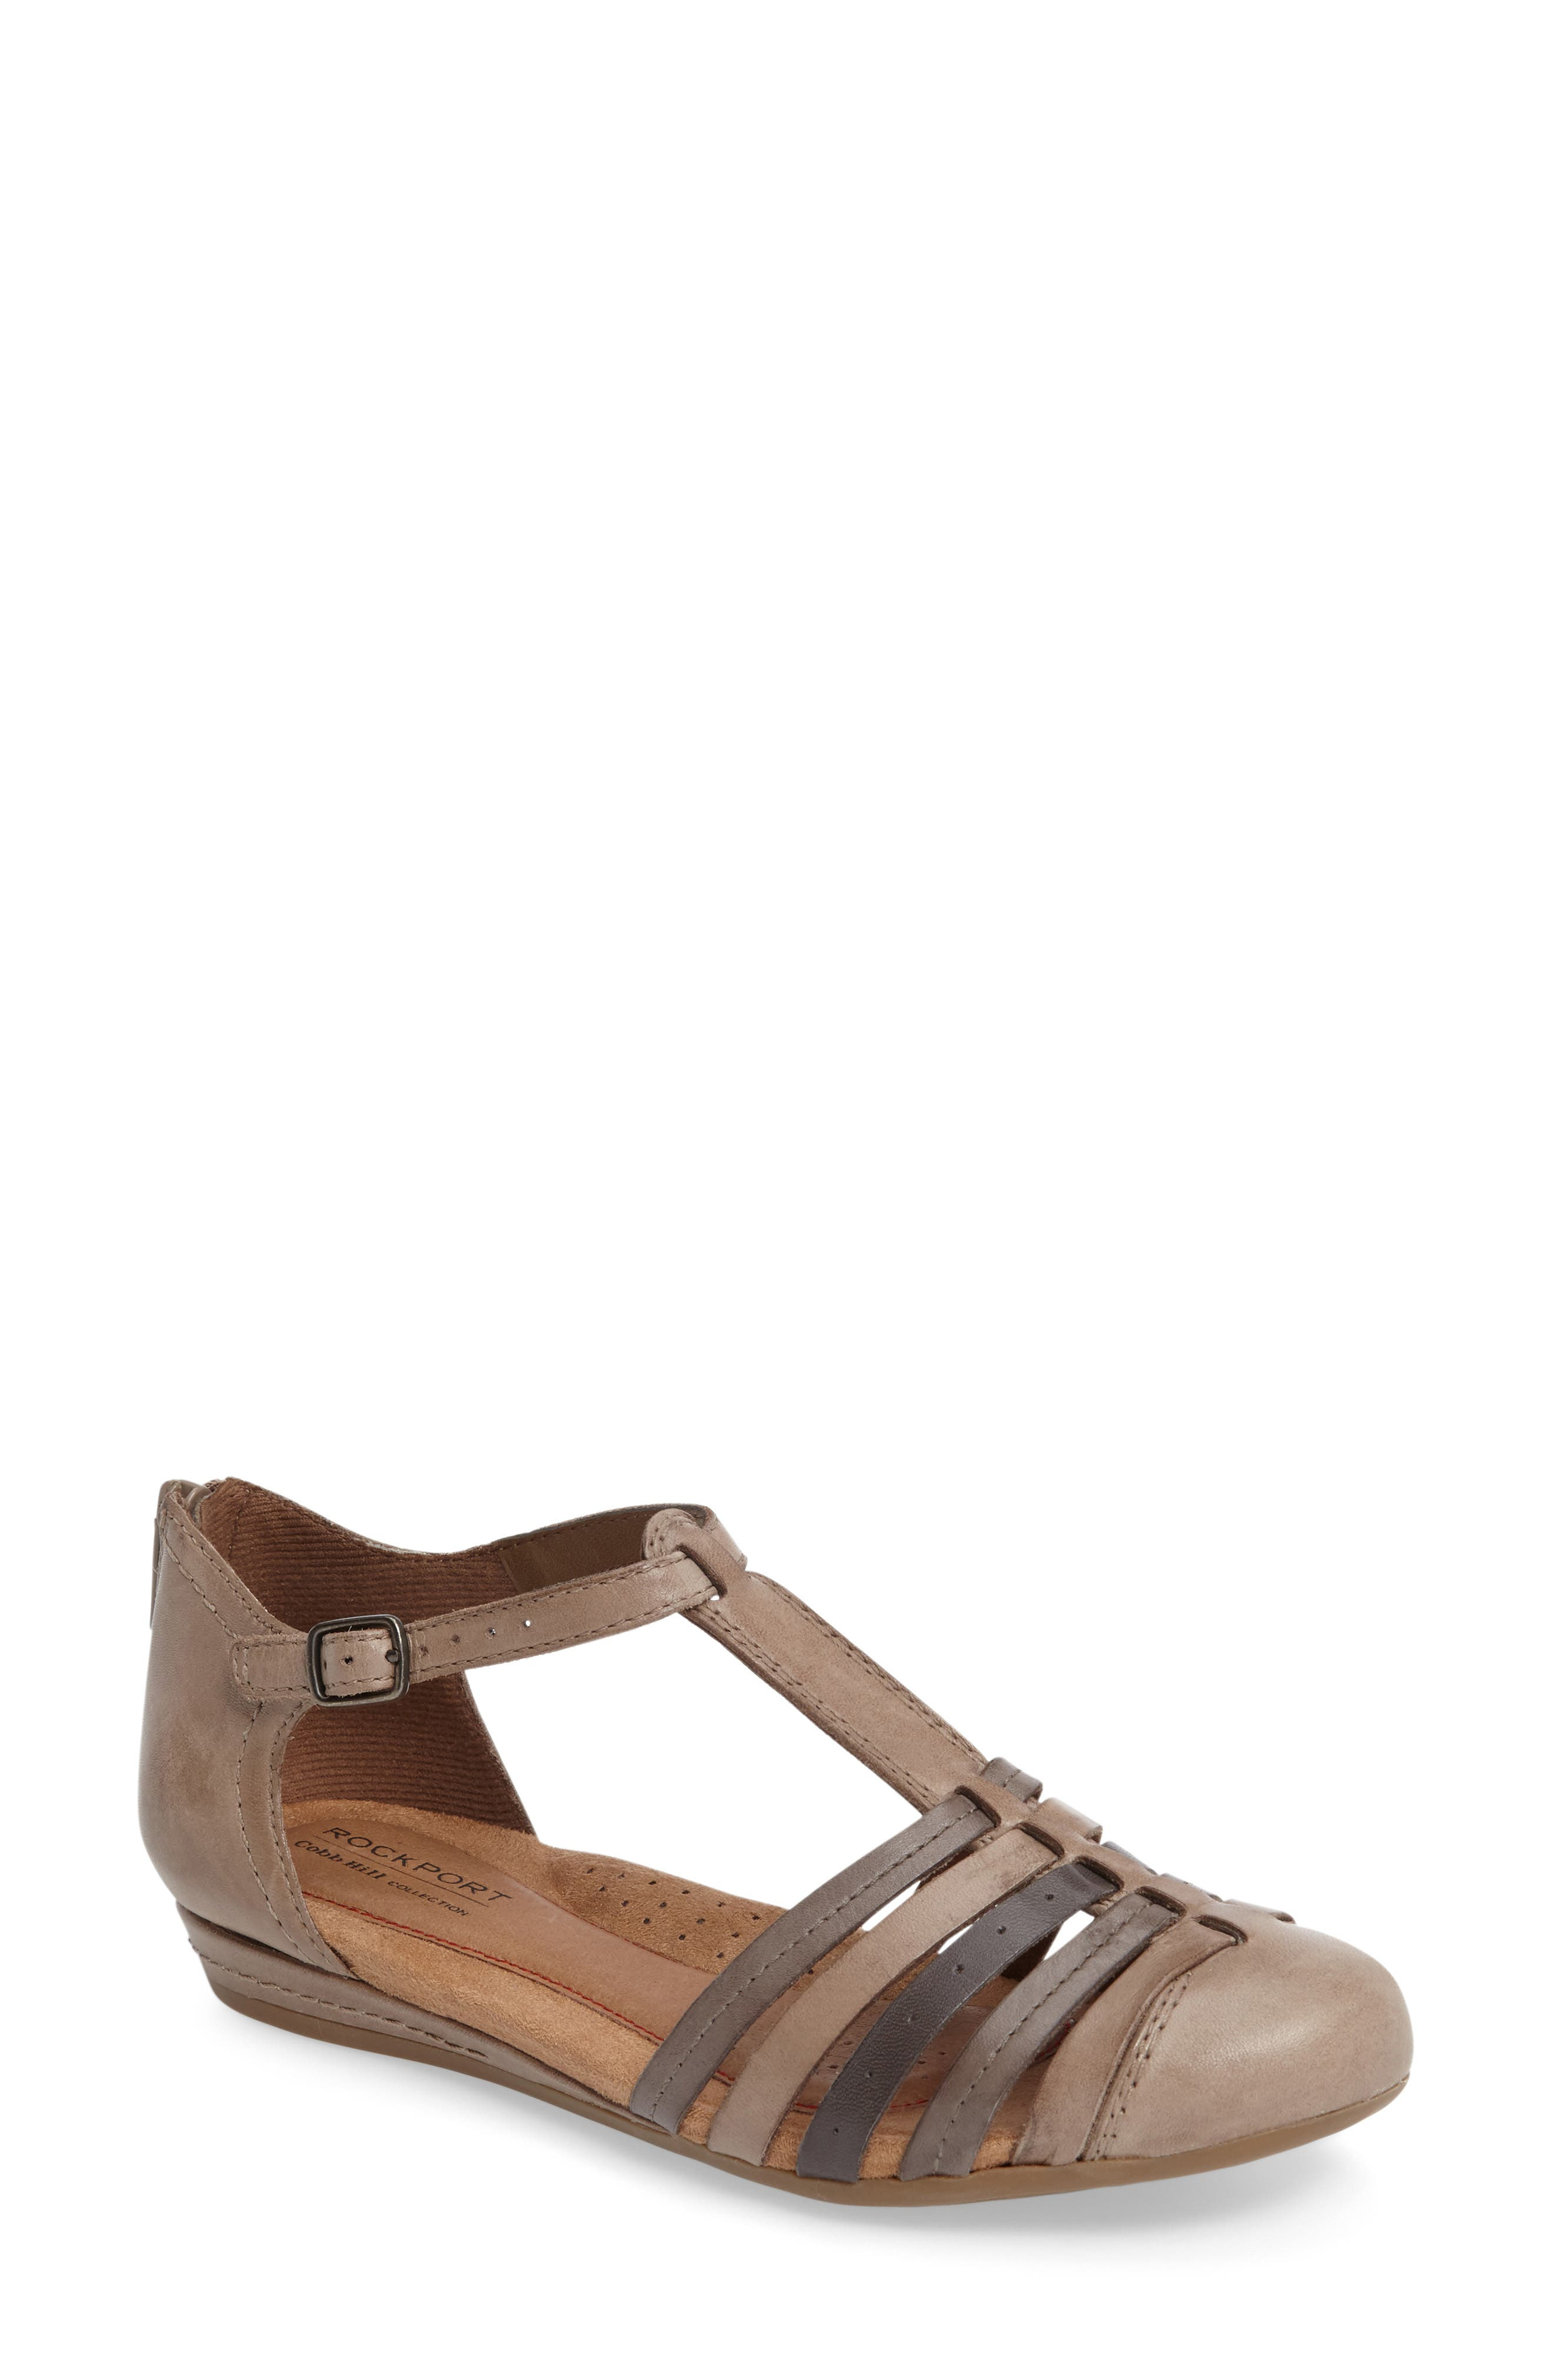 Rockport Cobb Hill Galway T-Strap Sandal (Women)